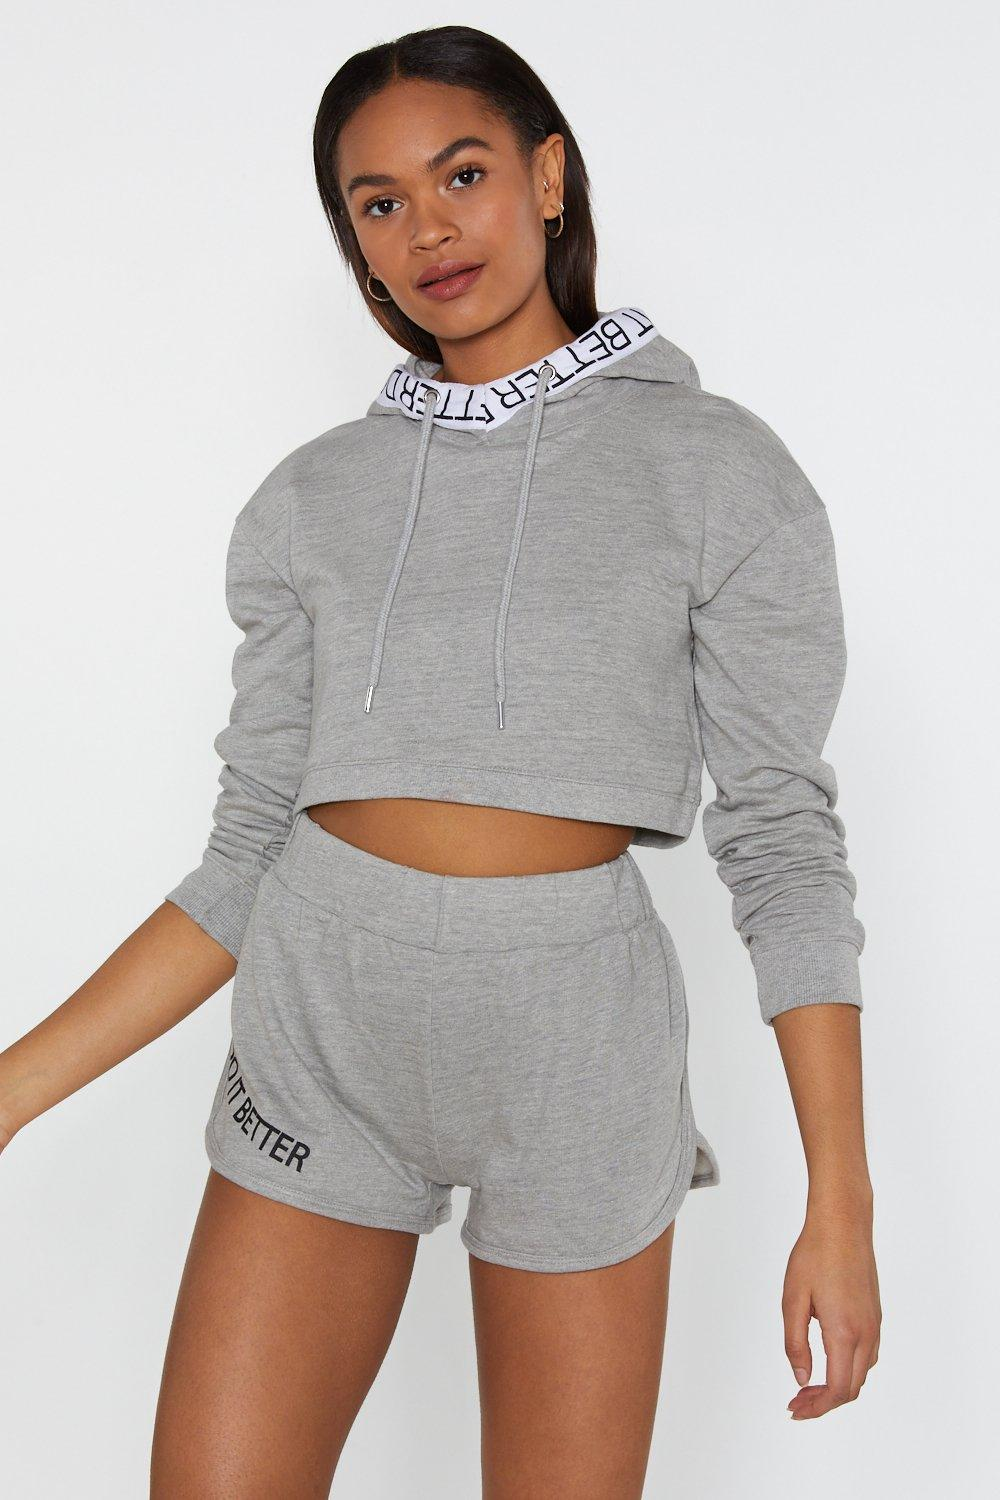 635c299ed49 Do It Better Cropped Hoodie   Shop Clothes at Nasty Gal!